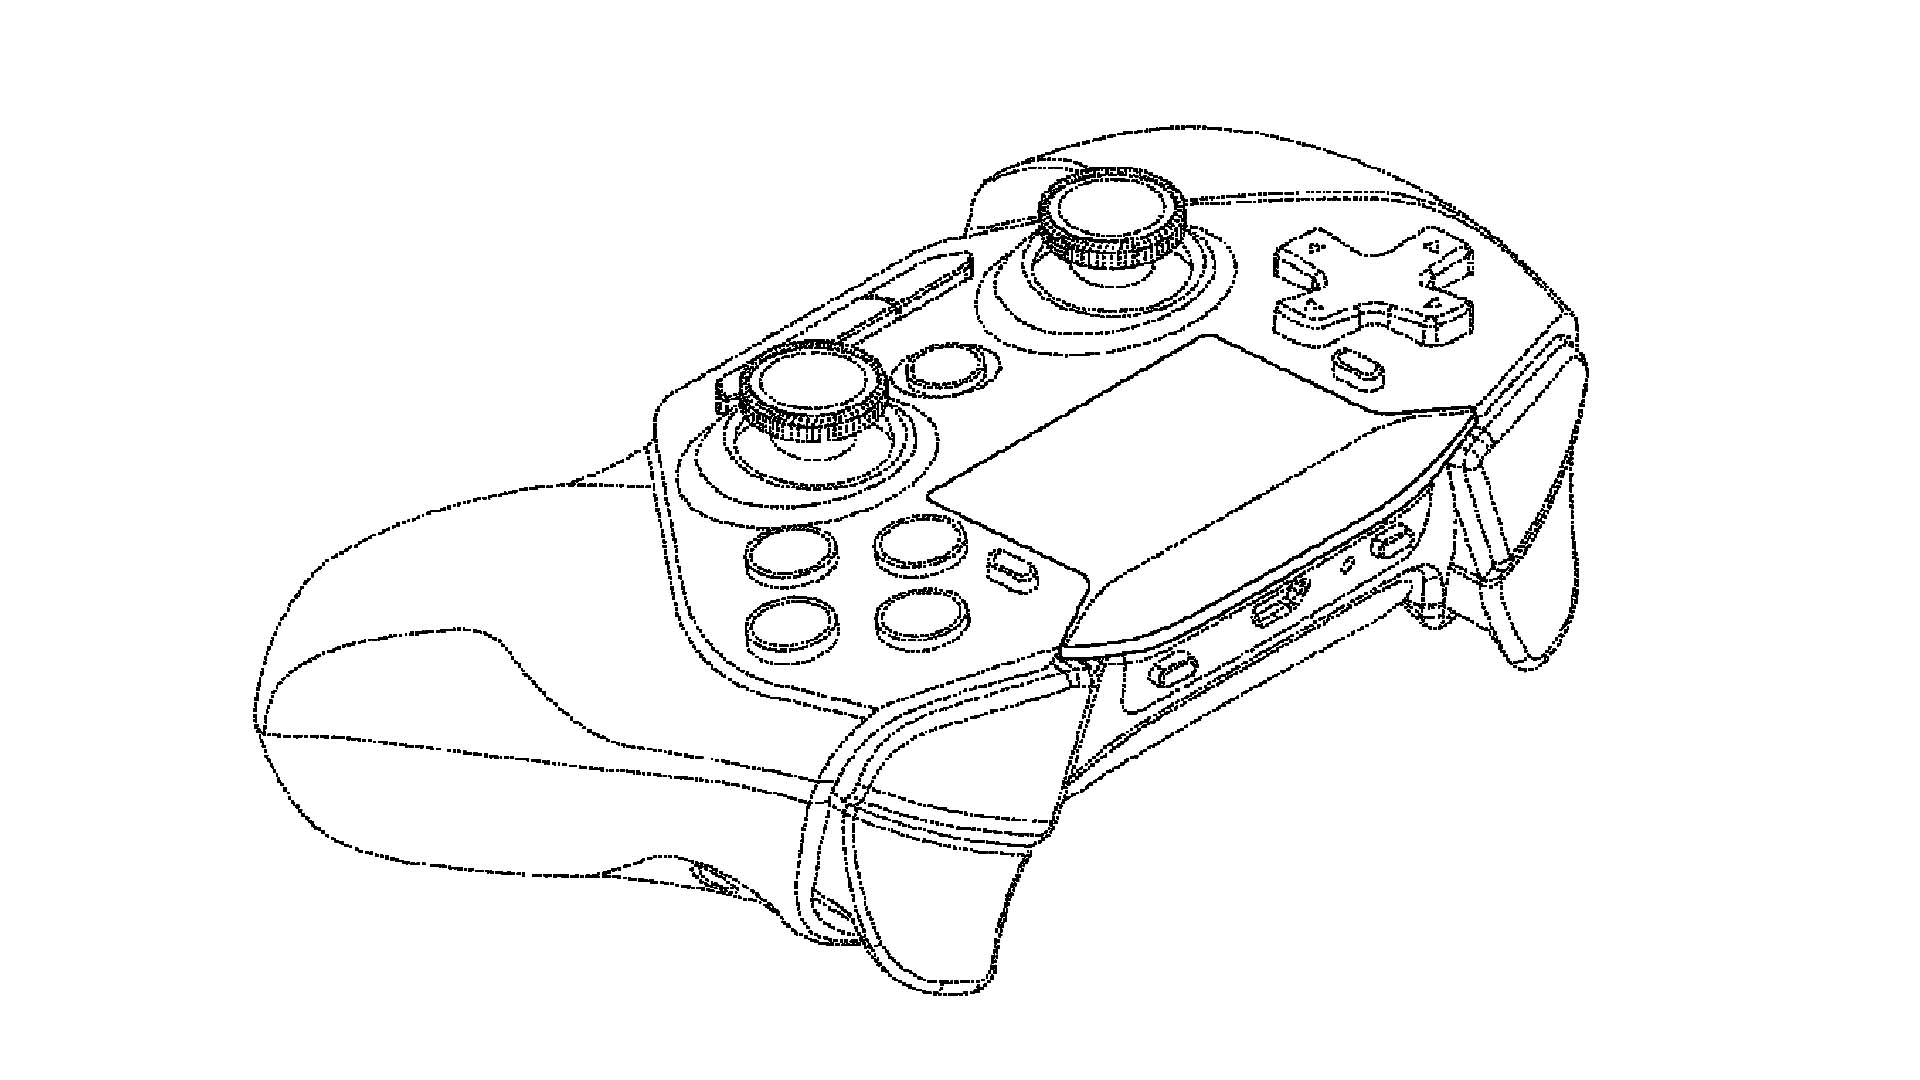 Intel patents Sony Dualshock-style gamepad likely fit for